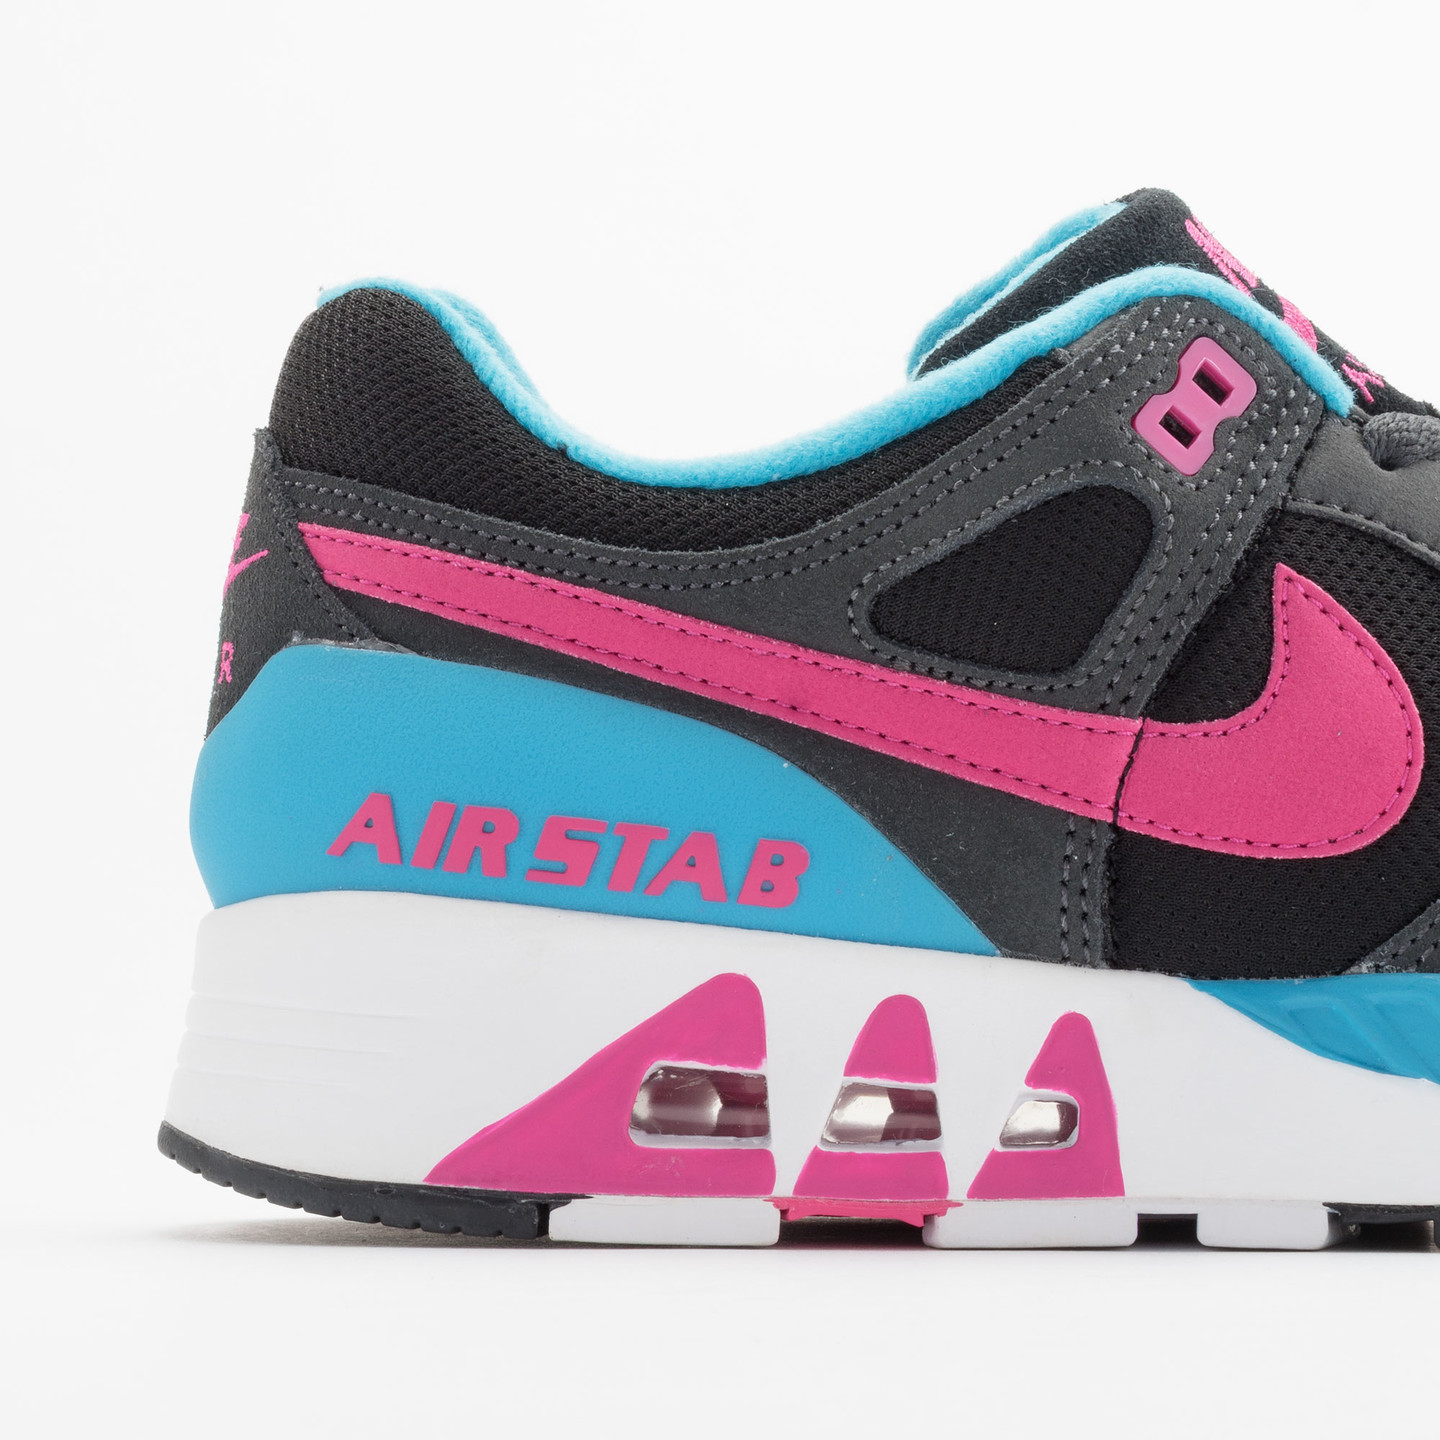 Nike Air Stab Black/Hot Pink-Anthrct-Bl Lgn 312451-004-38.5